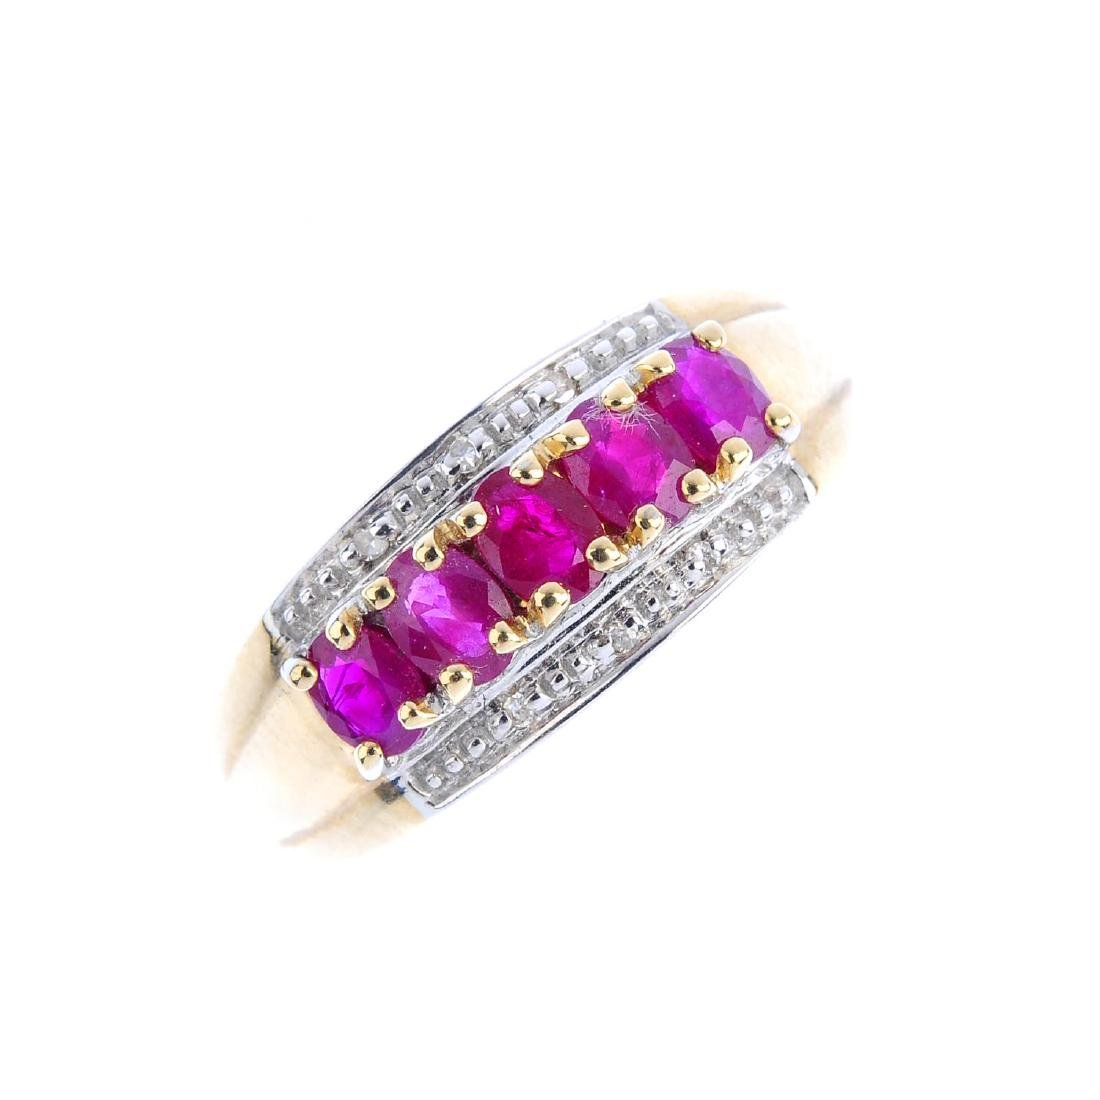 A 9ct gold ruby and diamond ring. The oval-shape ruby